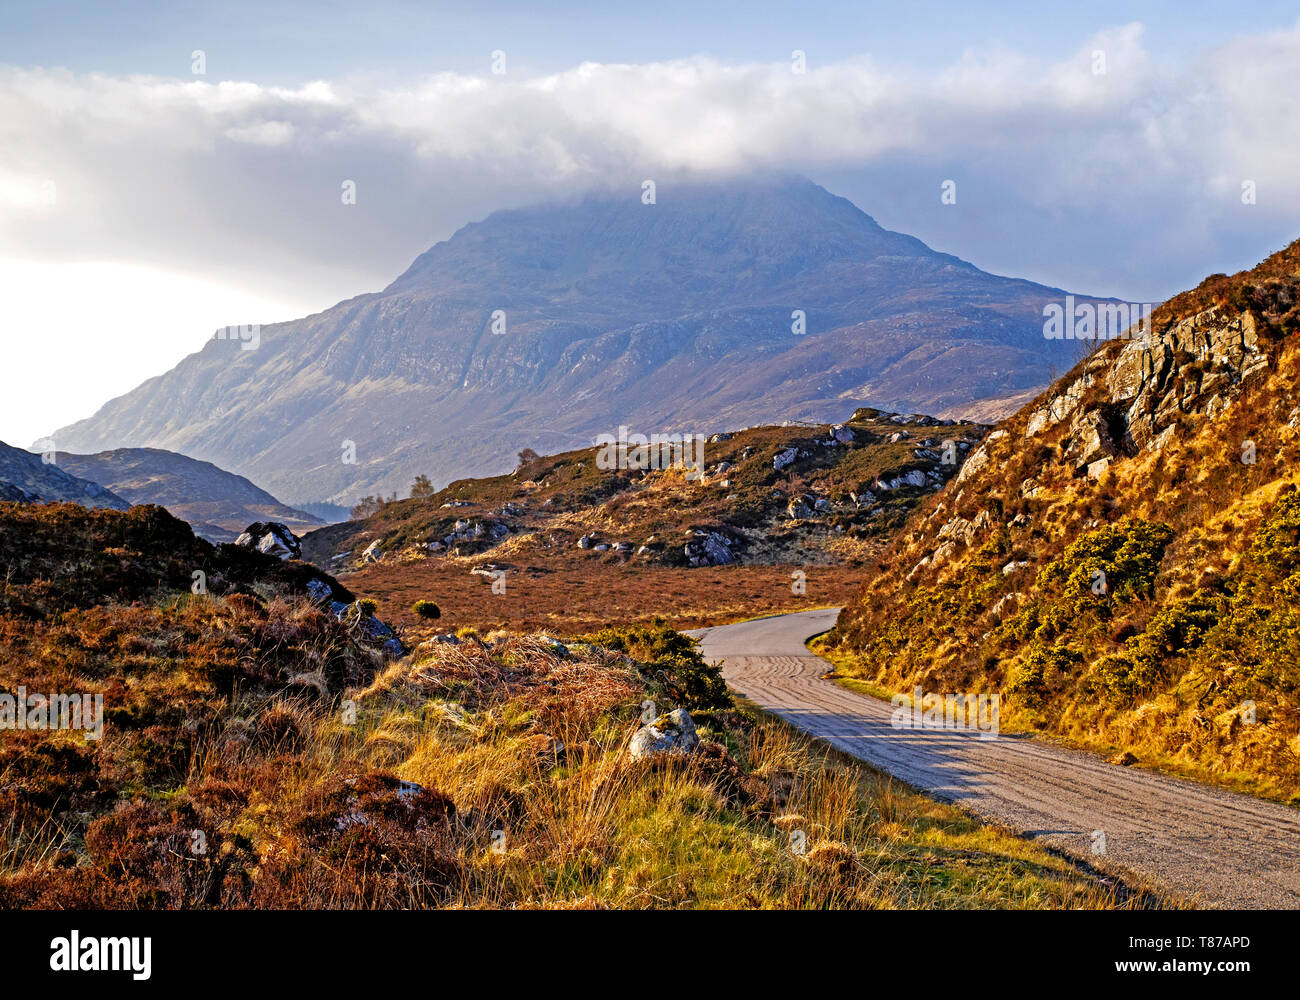 Ben Stack seen from A838 road, hazy morning, wispy cloud on summit, Sutherland, Scottish Highlands.UK - Stock Image